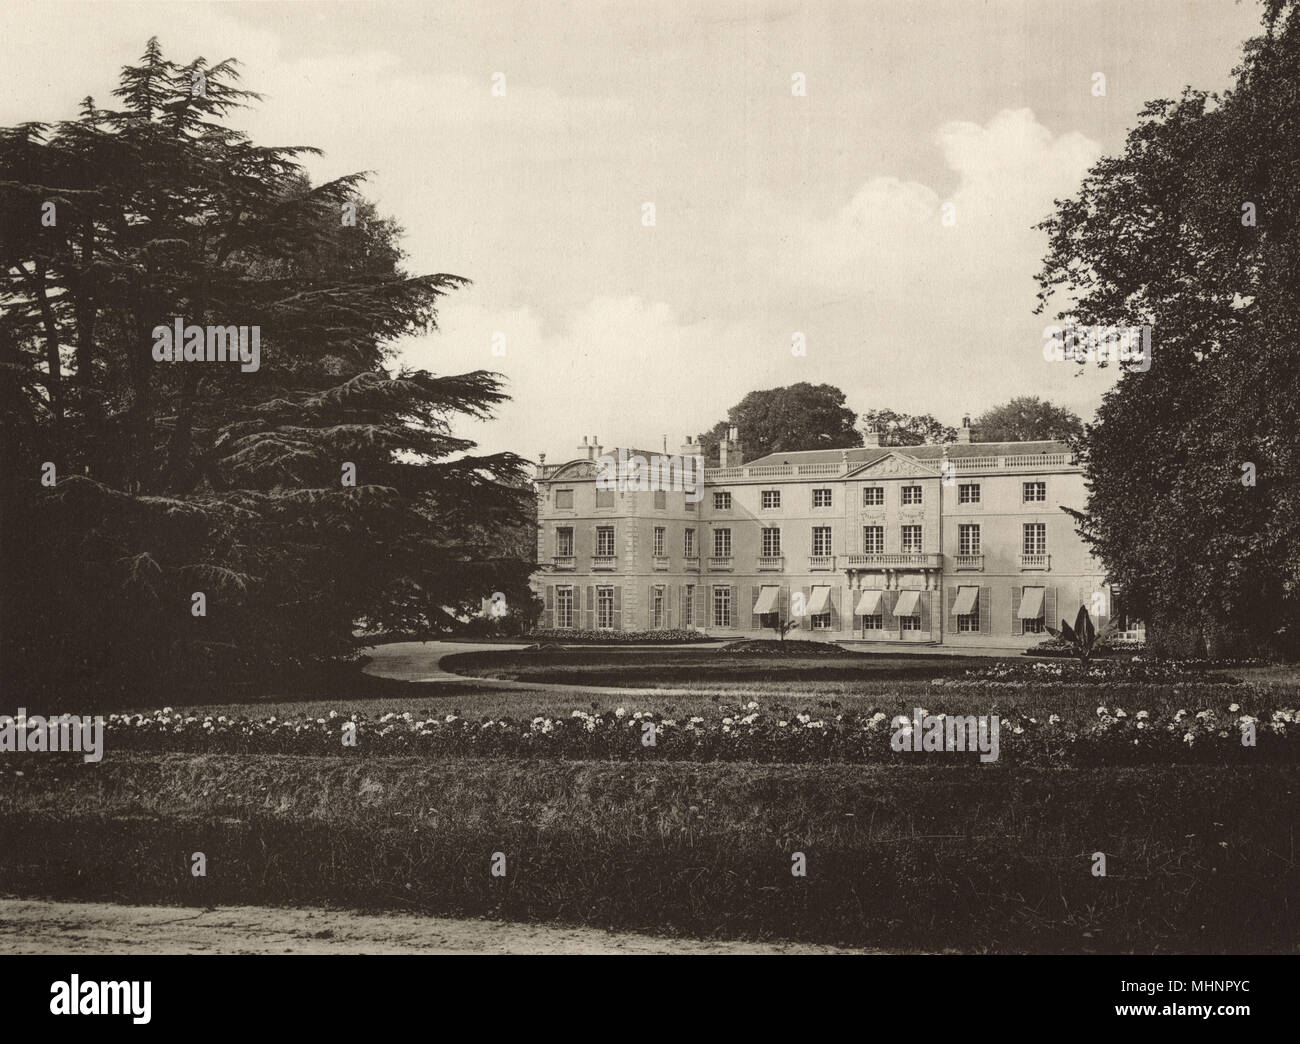 Chateau de Vaussieux, Vaux-sur-Seulles, Normandy, France - main view.     Date: circa 1905 - Stock Image